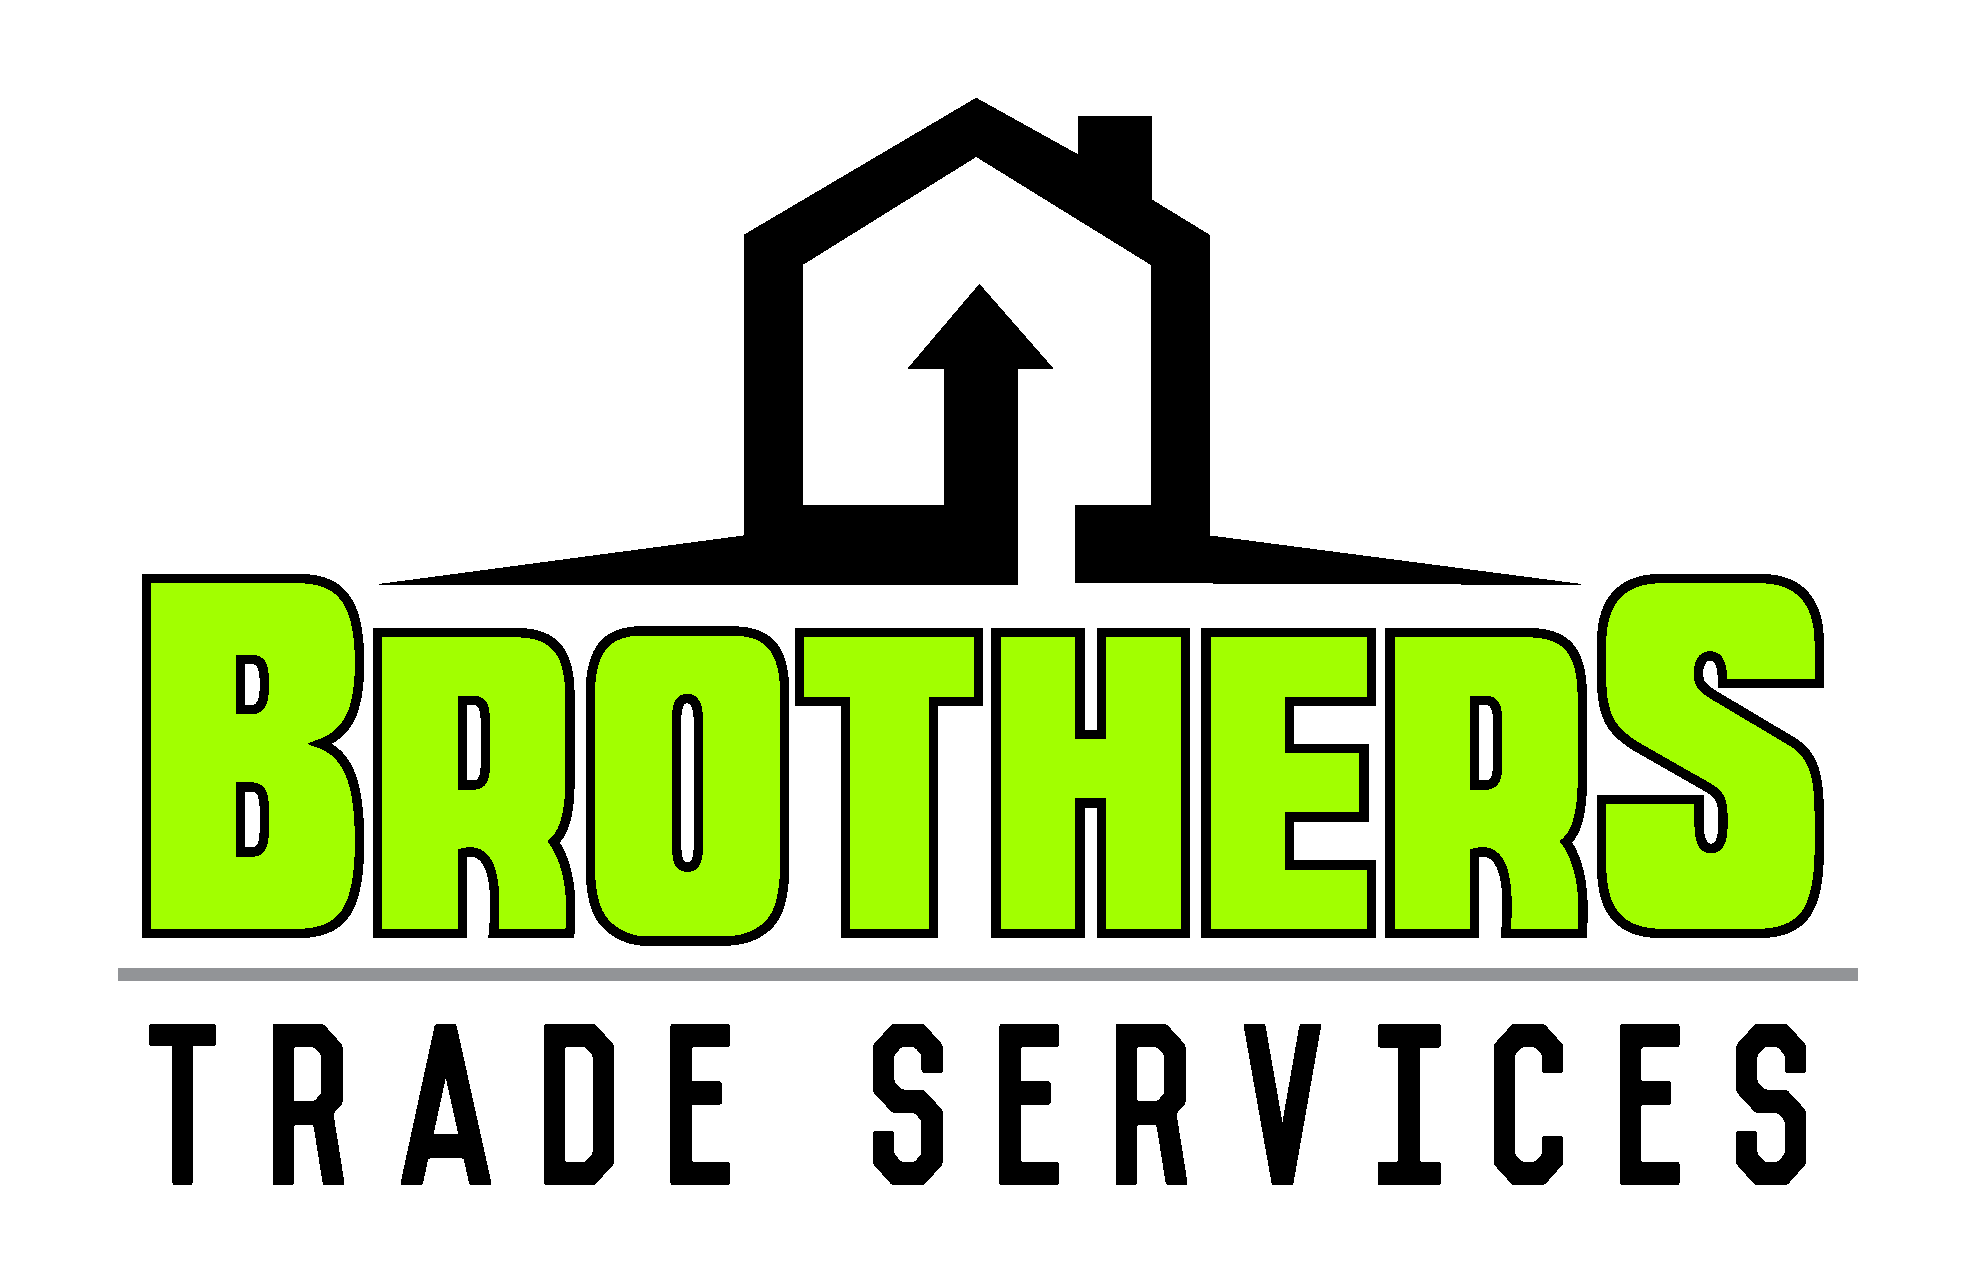 Brothers Trade Services